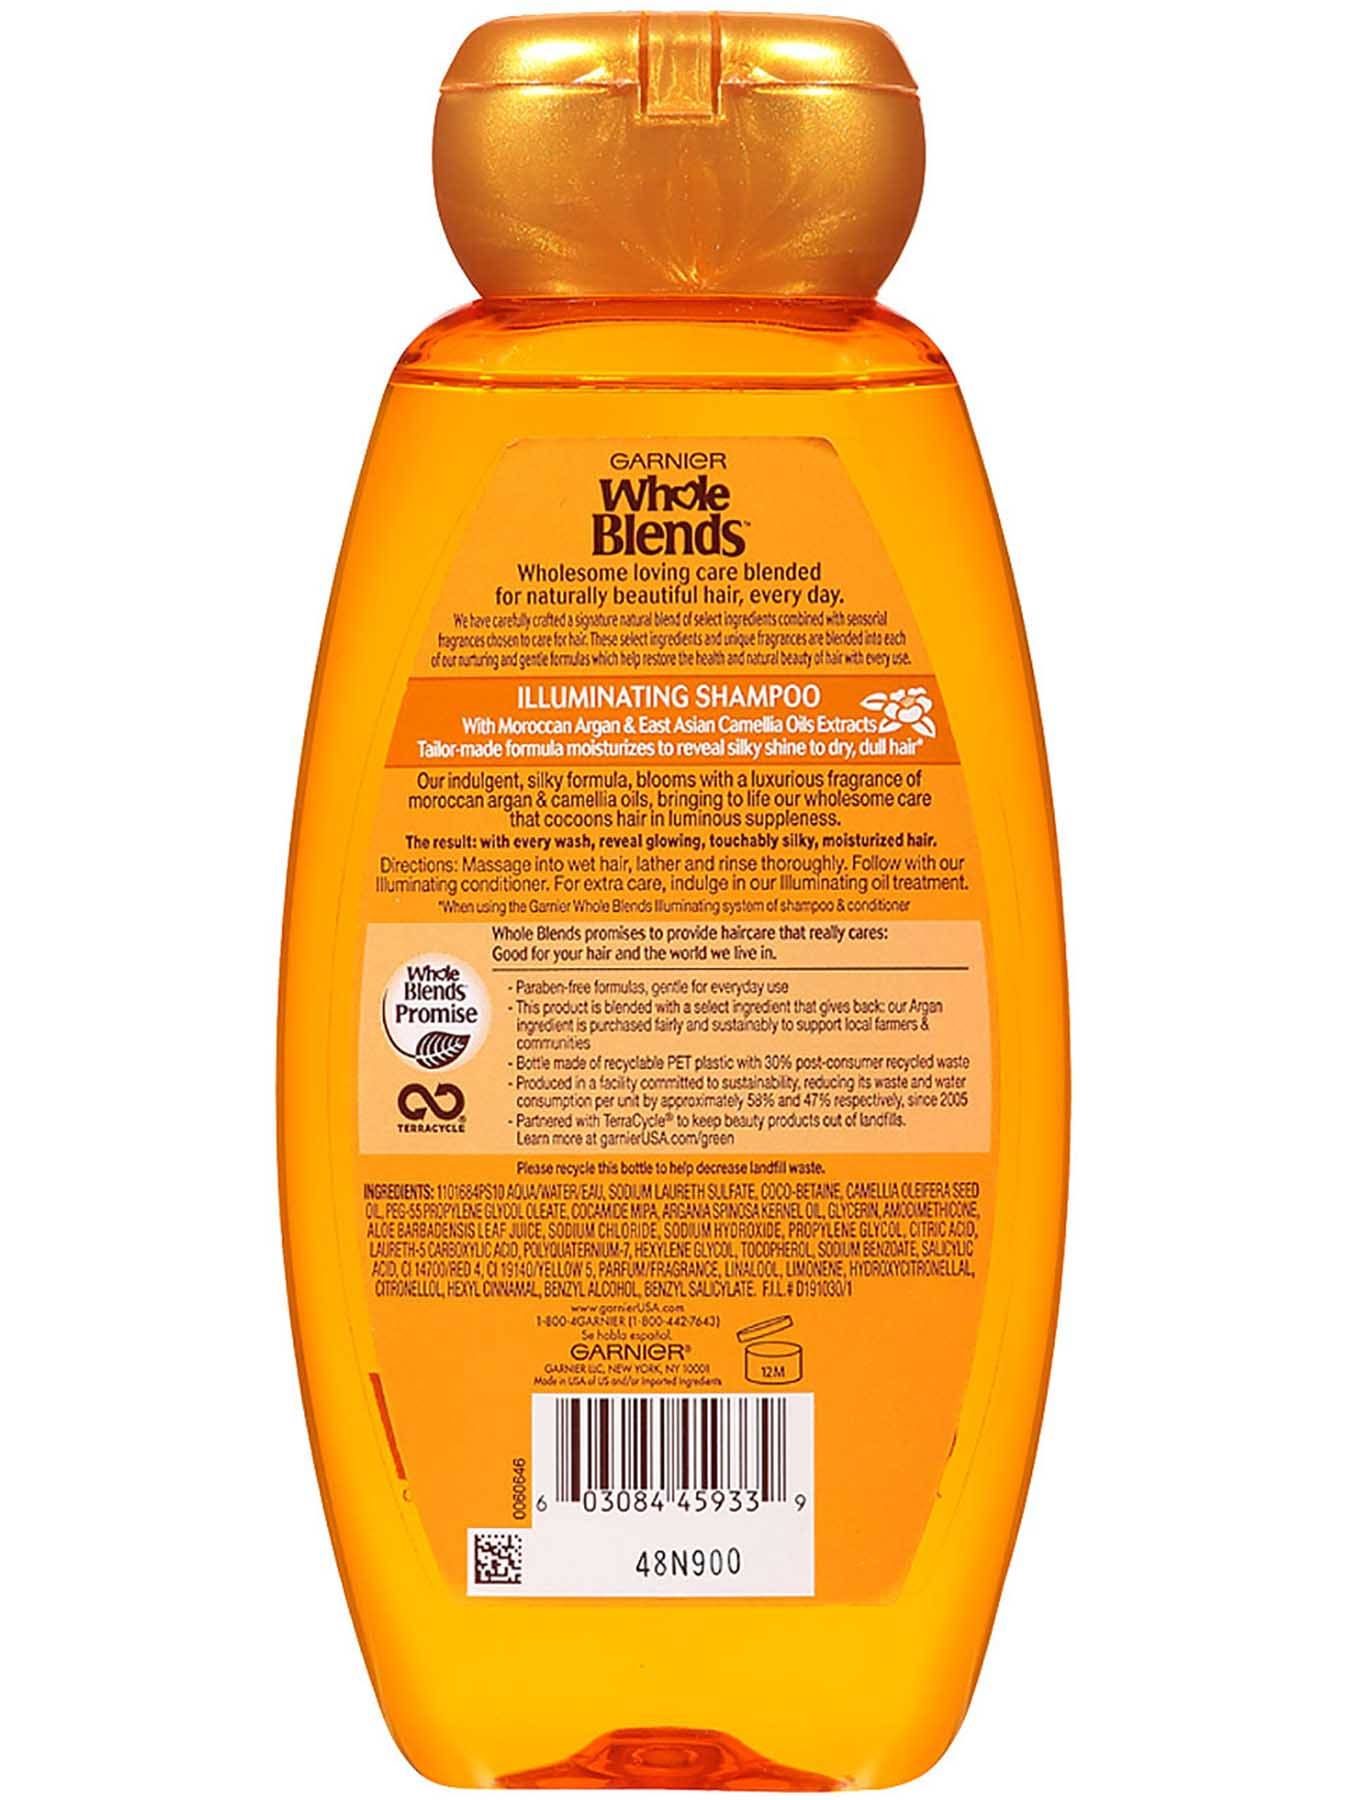 Garnier Whole Blends Illuminating Shampoo Moroccan Argan Camellia Oils Extracts Back Of Bottle